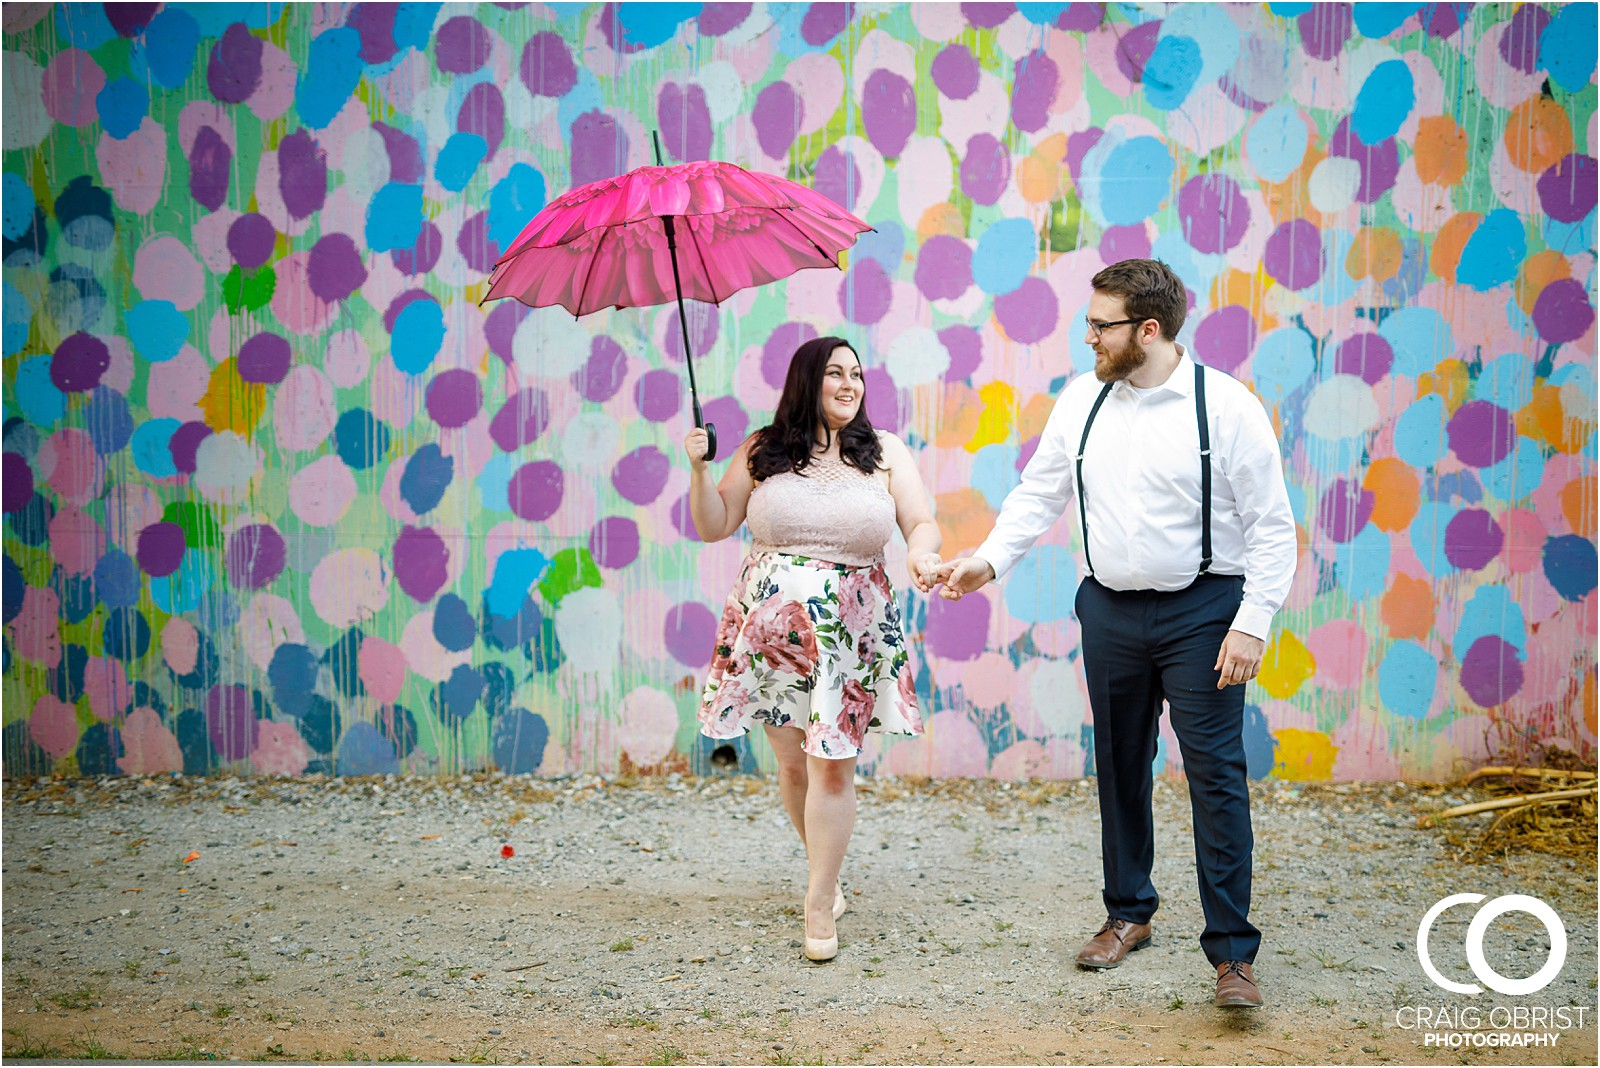 Ponce city markey Atlanta Beltline Piedmont Park engagement portraits_0009.jpg